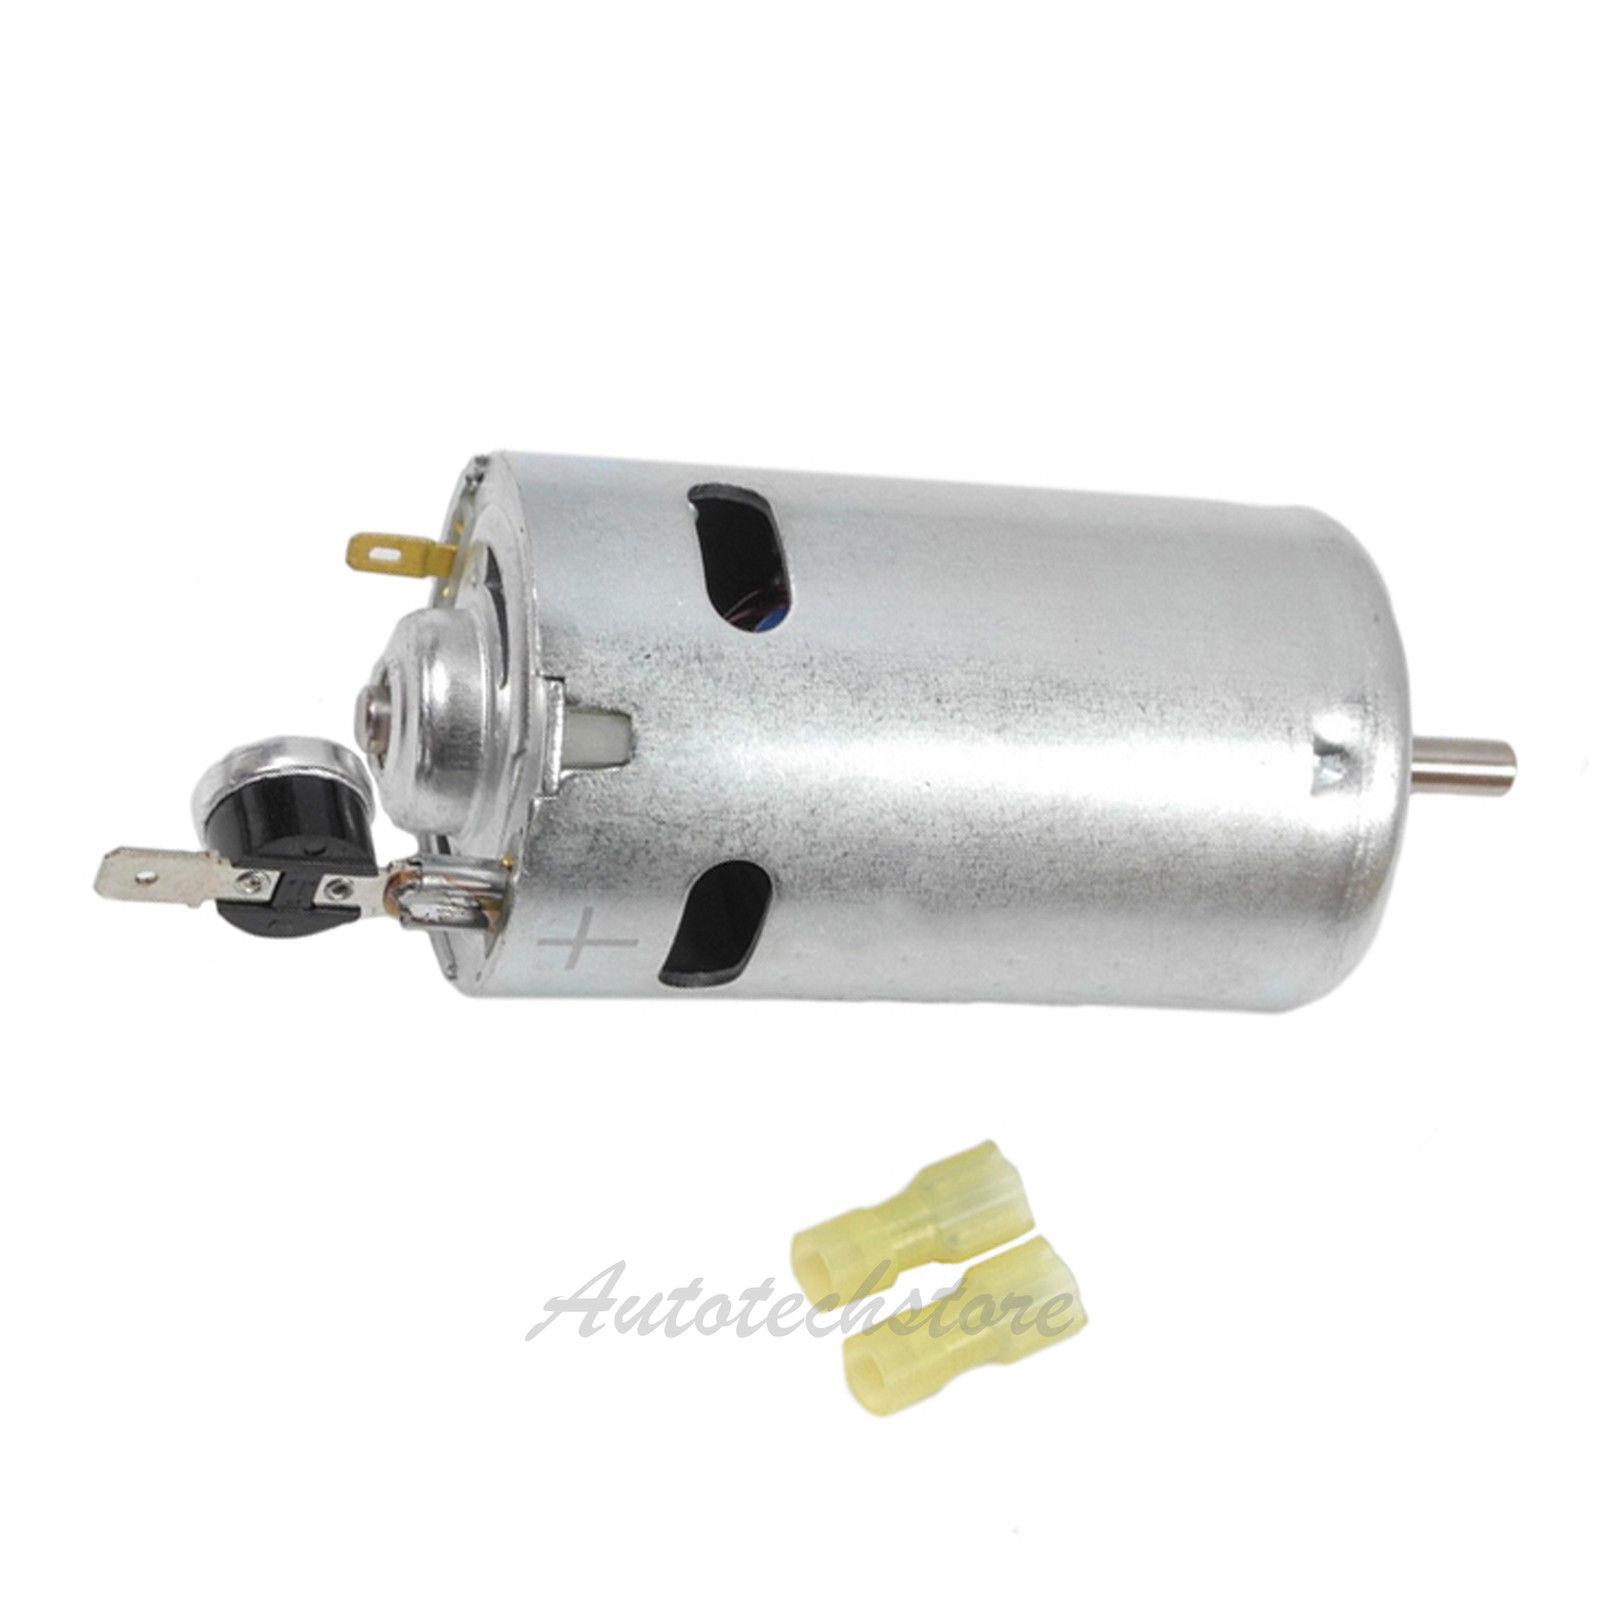 Details about Upgraded Central Locking Vacuum Supply Pump Repair For  Mercedes CL500 CL600 S430